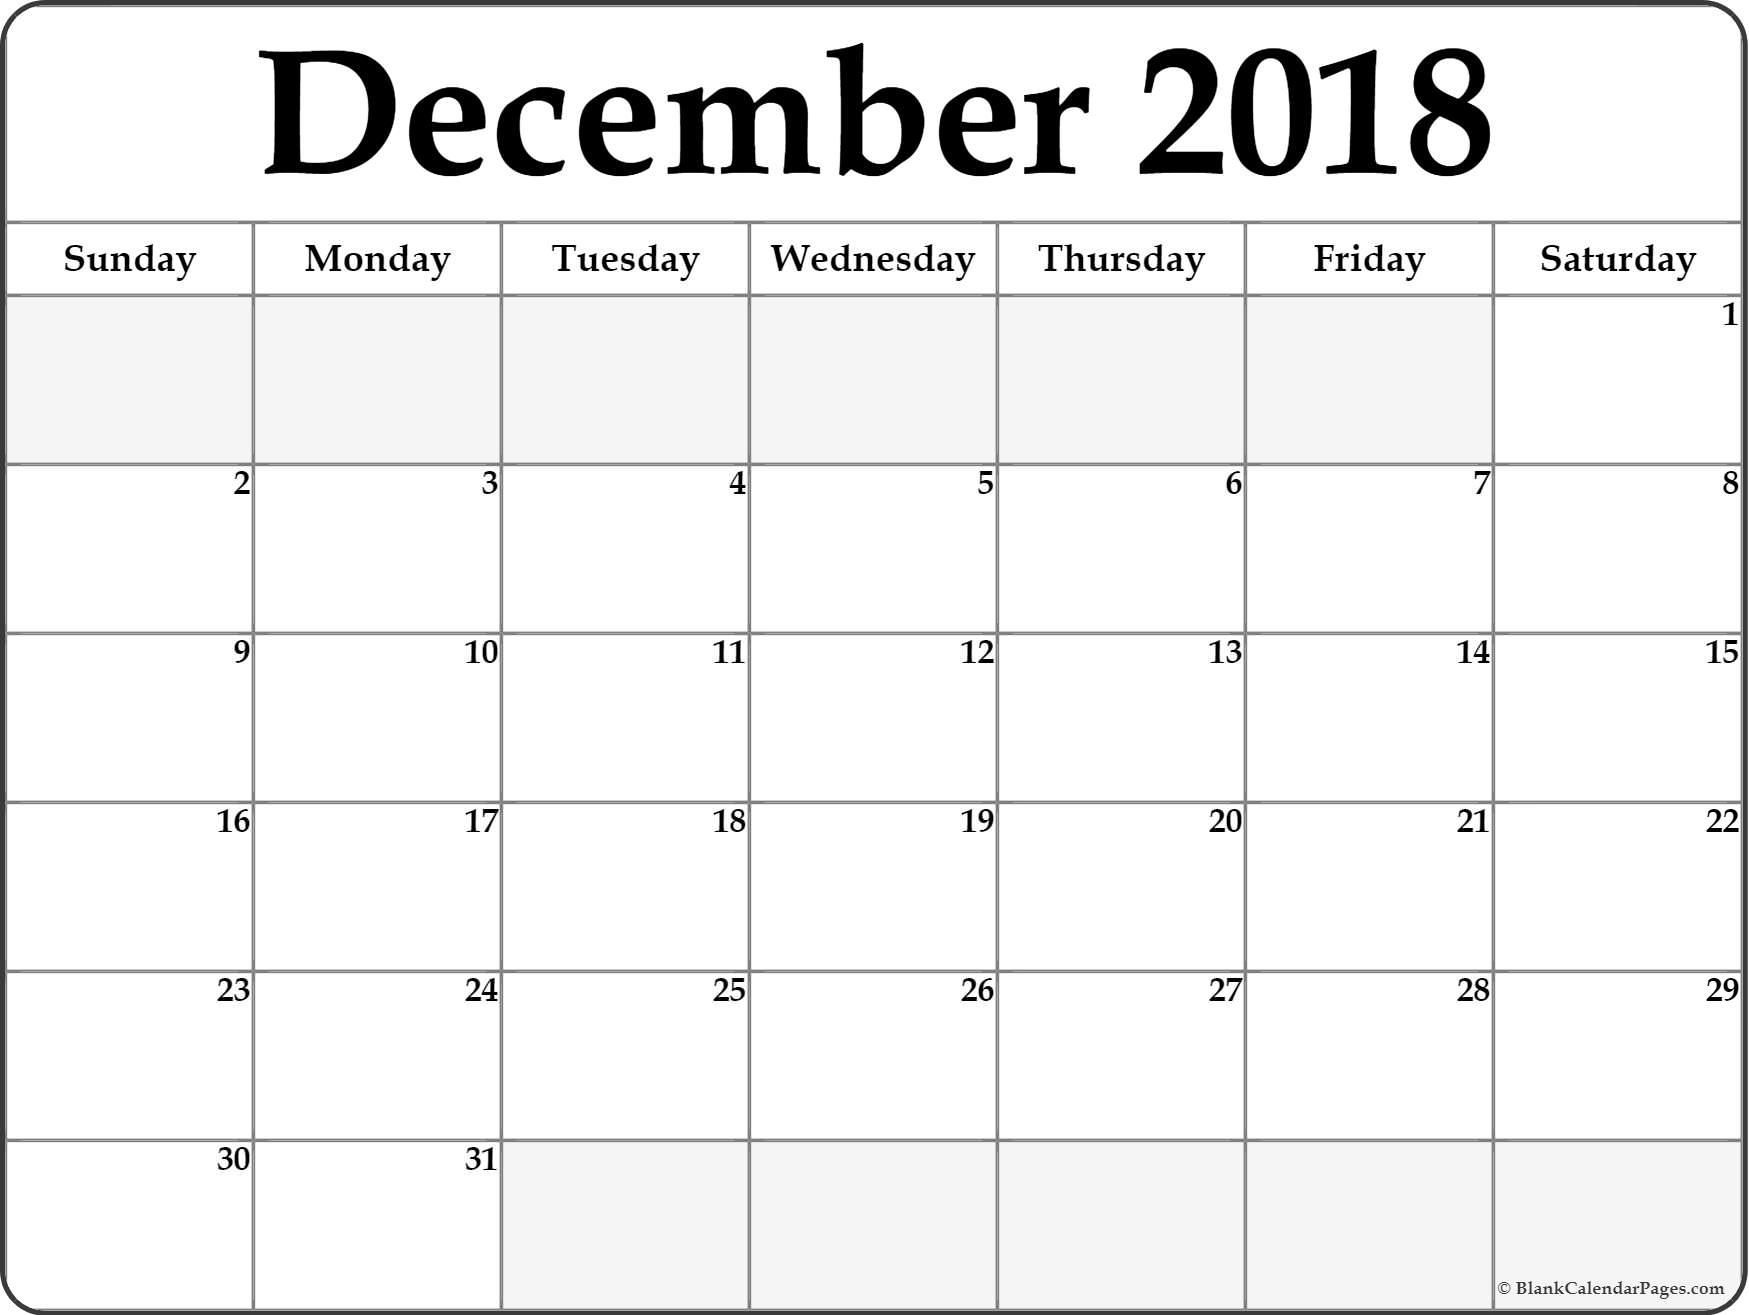 picture about December Calendar Printable With Holidays referred to as December 2018 blank calendar . December 2018 calendar